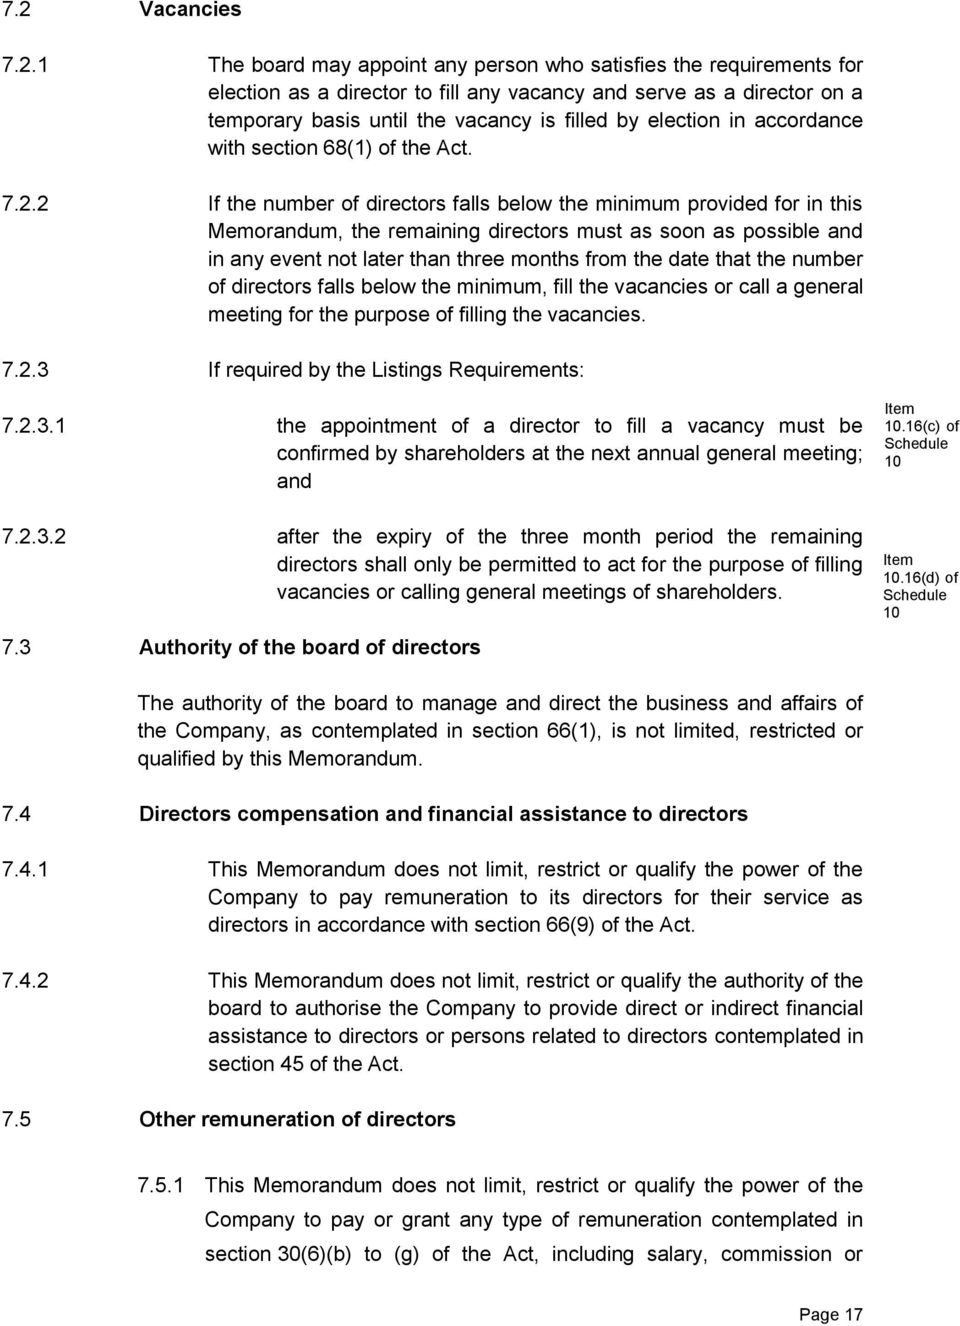 2 If the number of directors falls below the minimum provided for in this Memorandum, the remaining directors must as soon as possible and in any event not later than three months from the date that